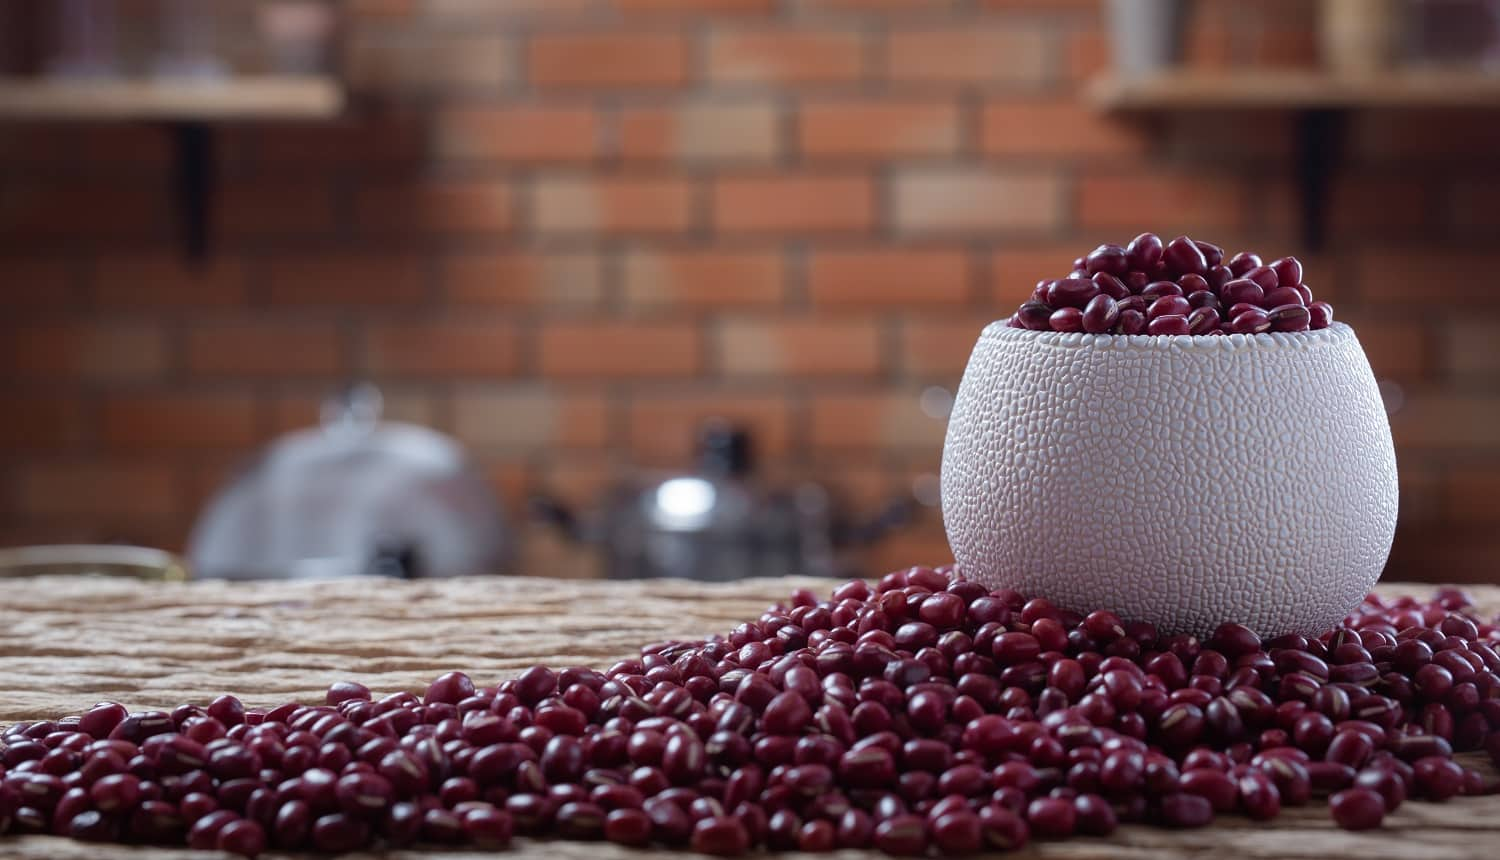 Red bean seeds on a wooden background in the kitchen